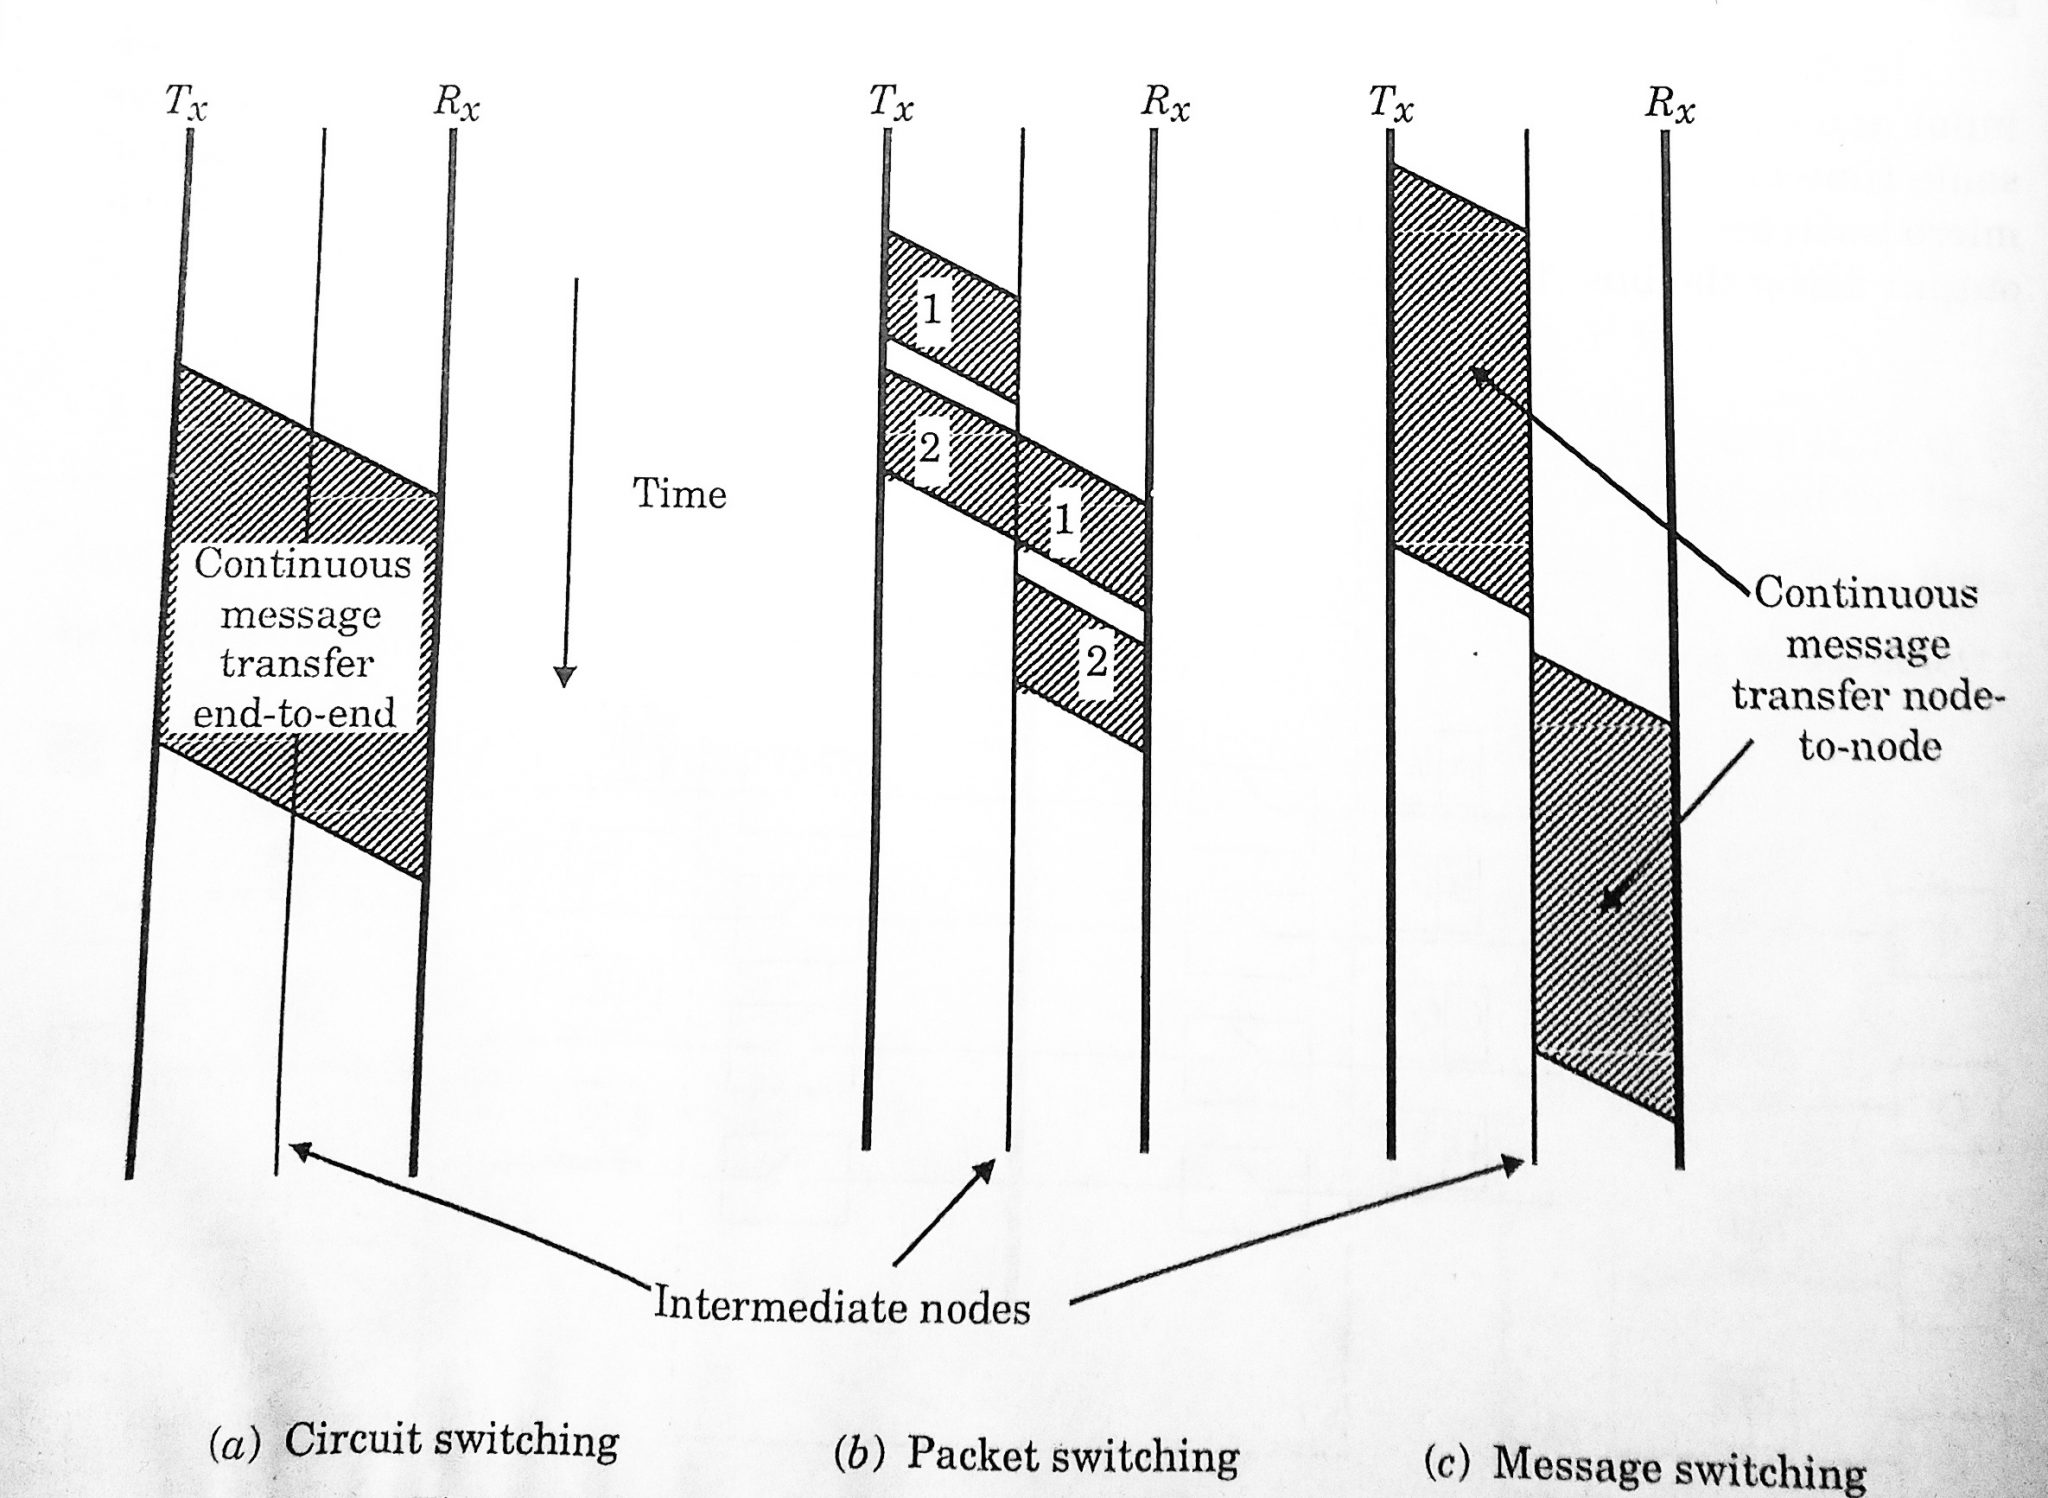 Types of Switching in Computer Network